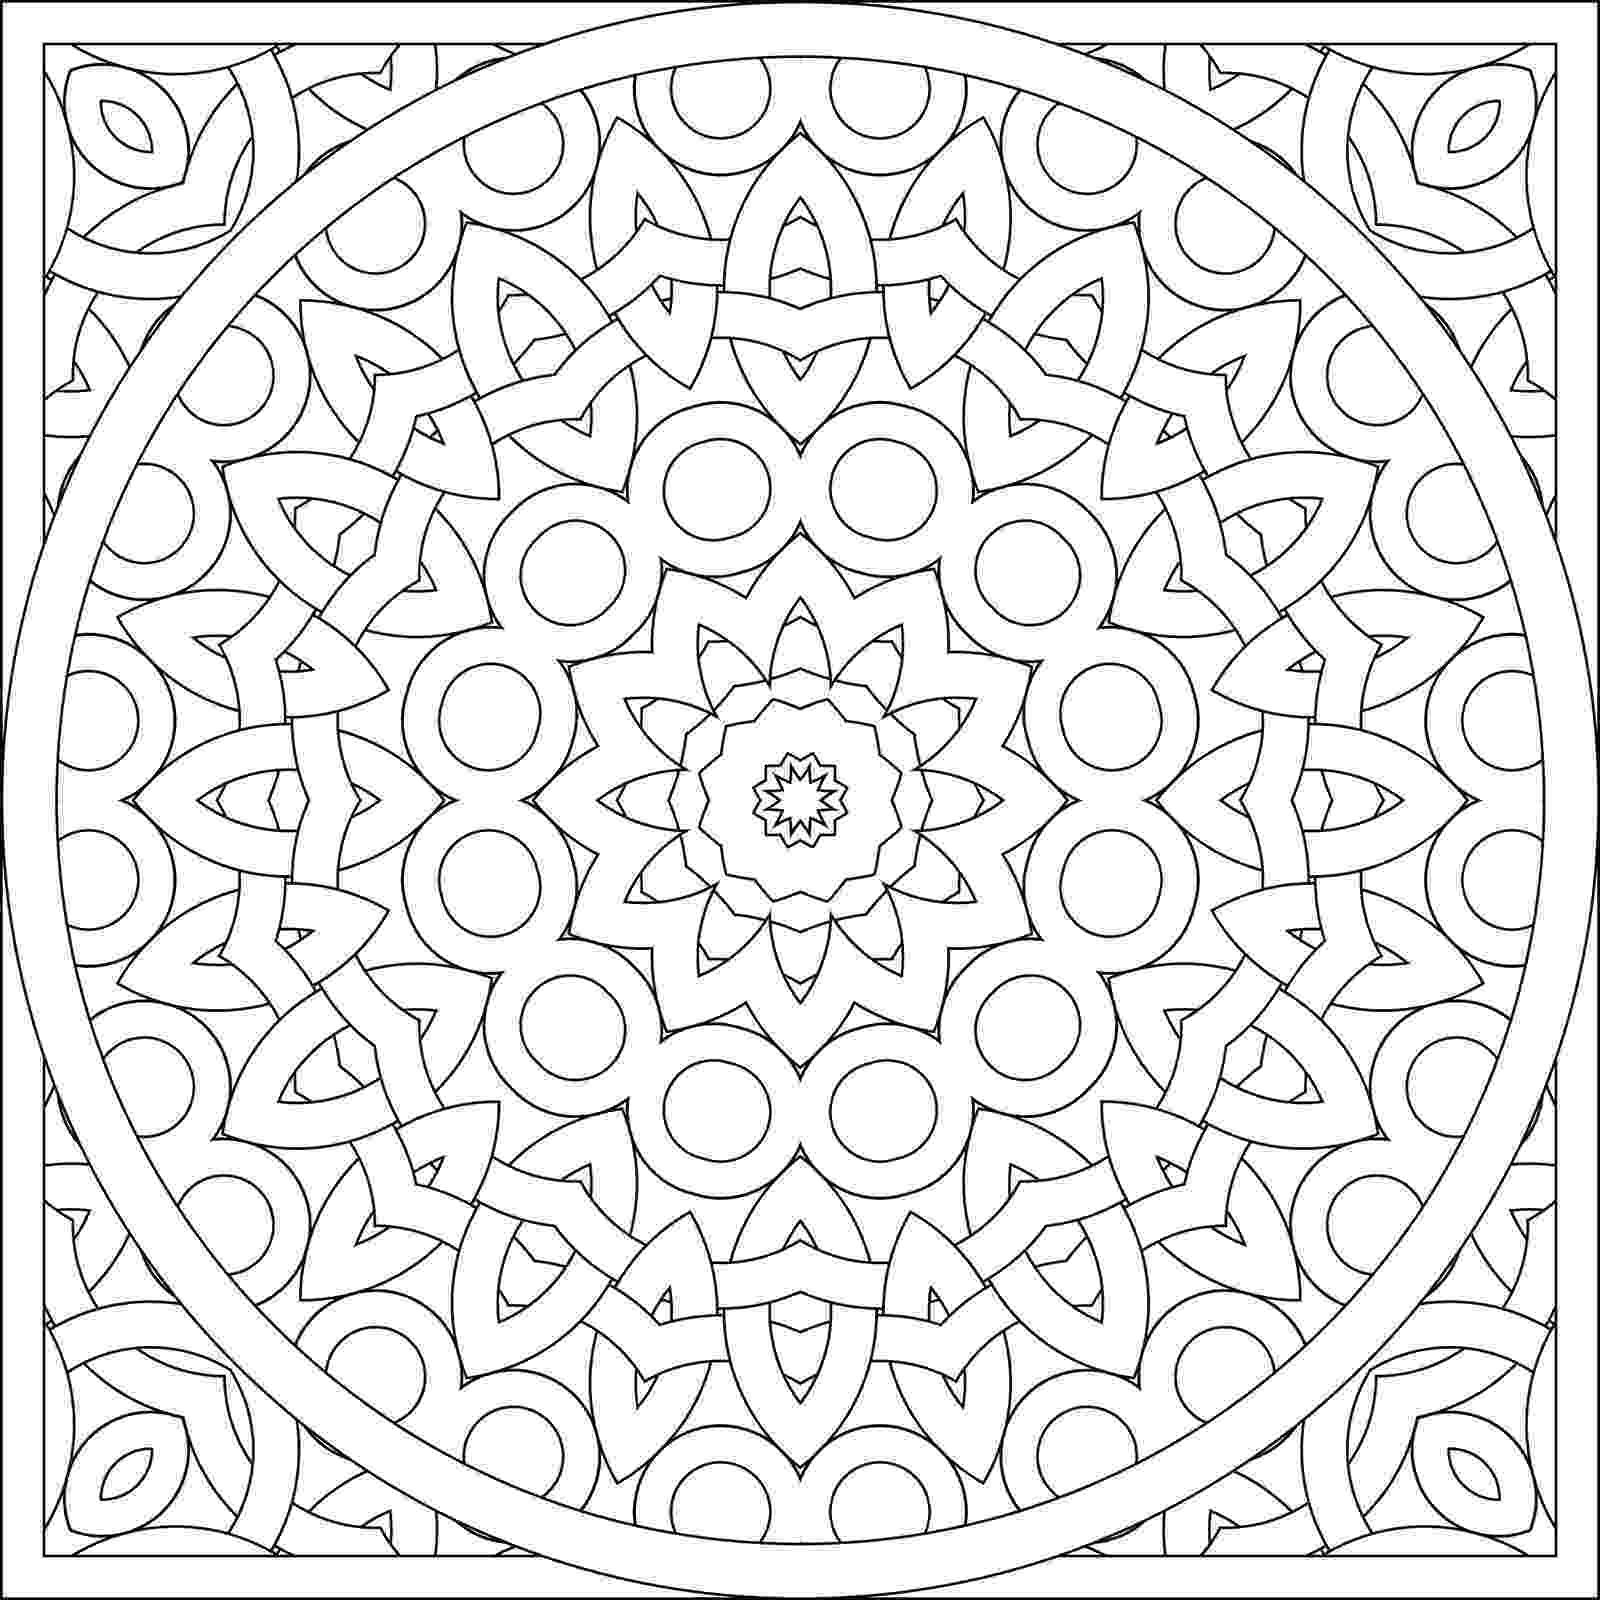 patterns coloring pattern coloring pages best coloring pages for kids patterns coloring